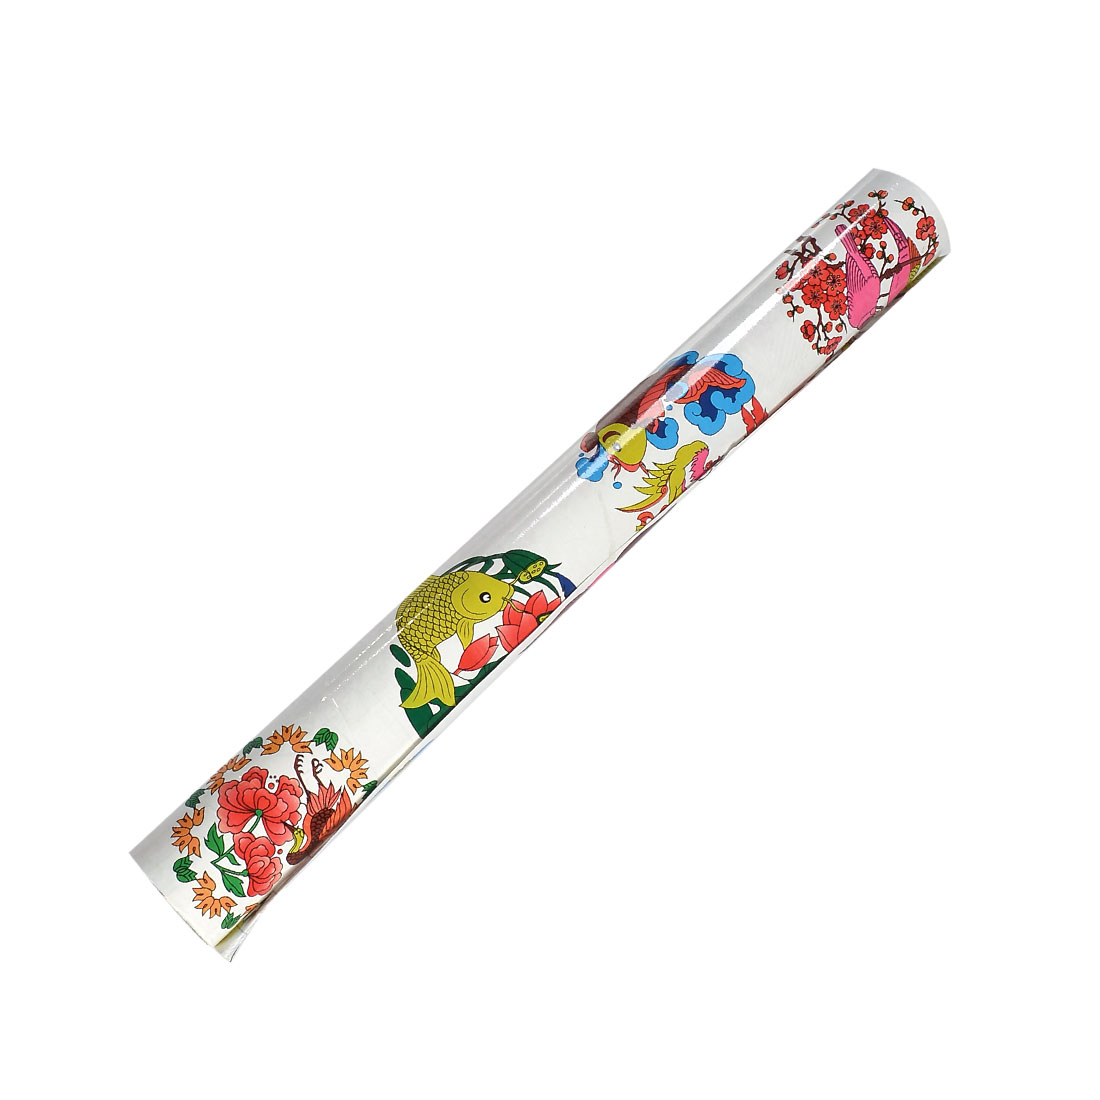 45cm x 1.8m Lotus Fish Bird Flower Printed Adhesive Window Film Roll